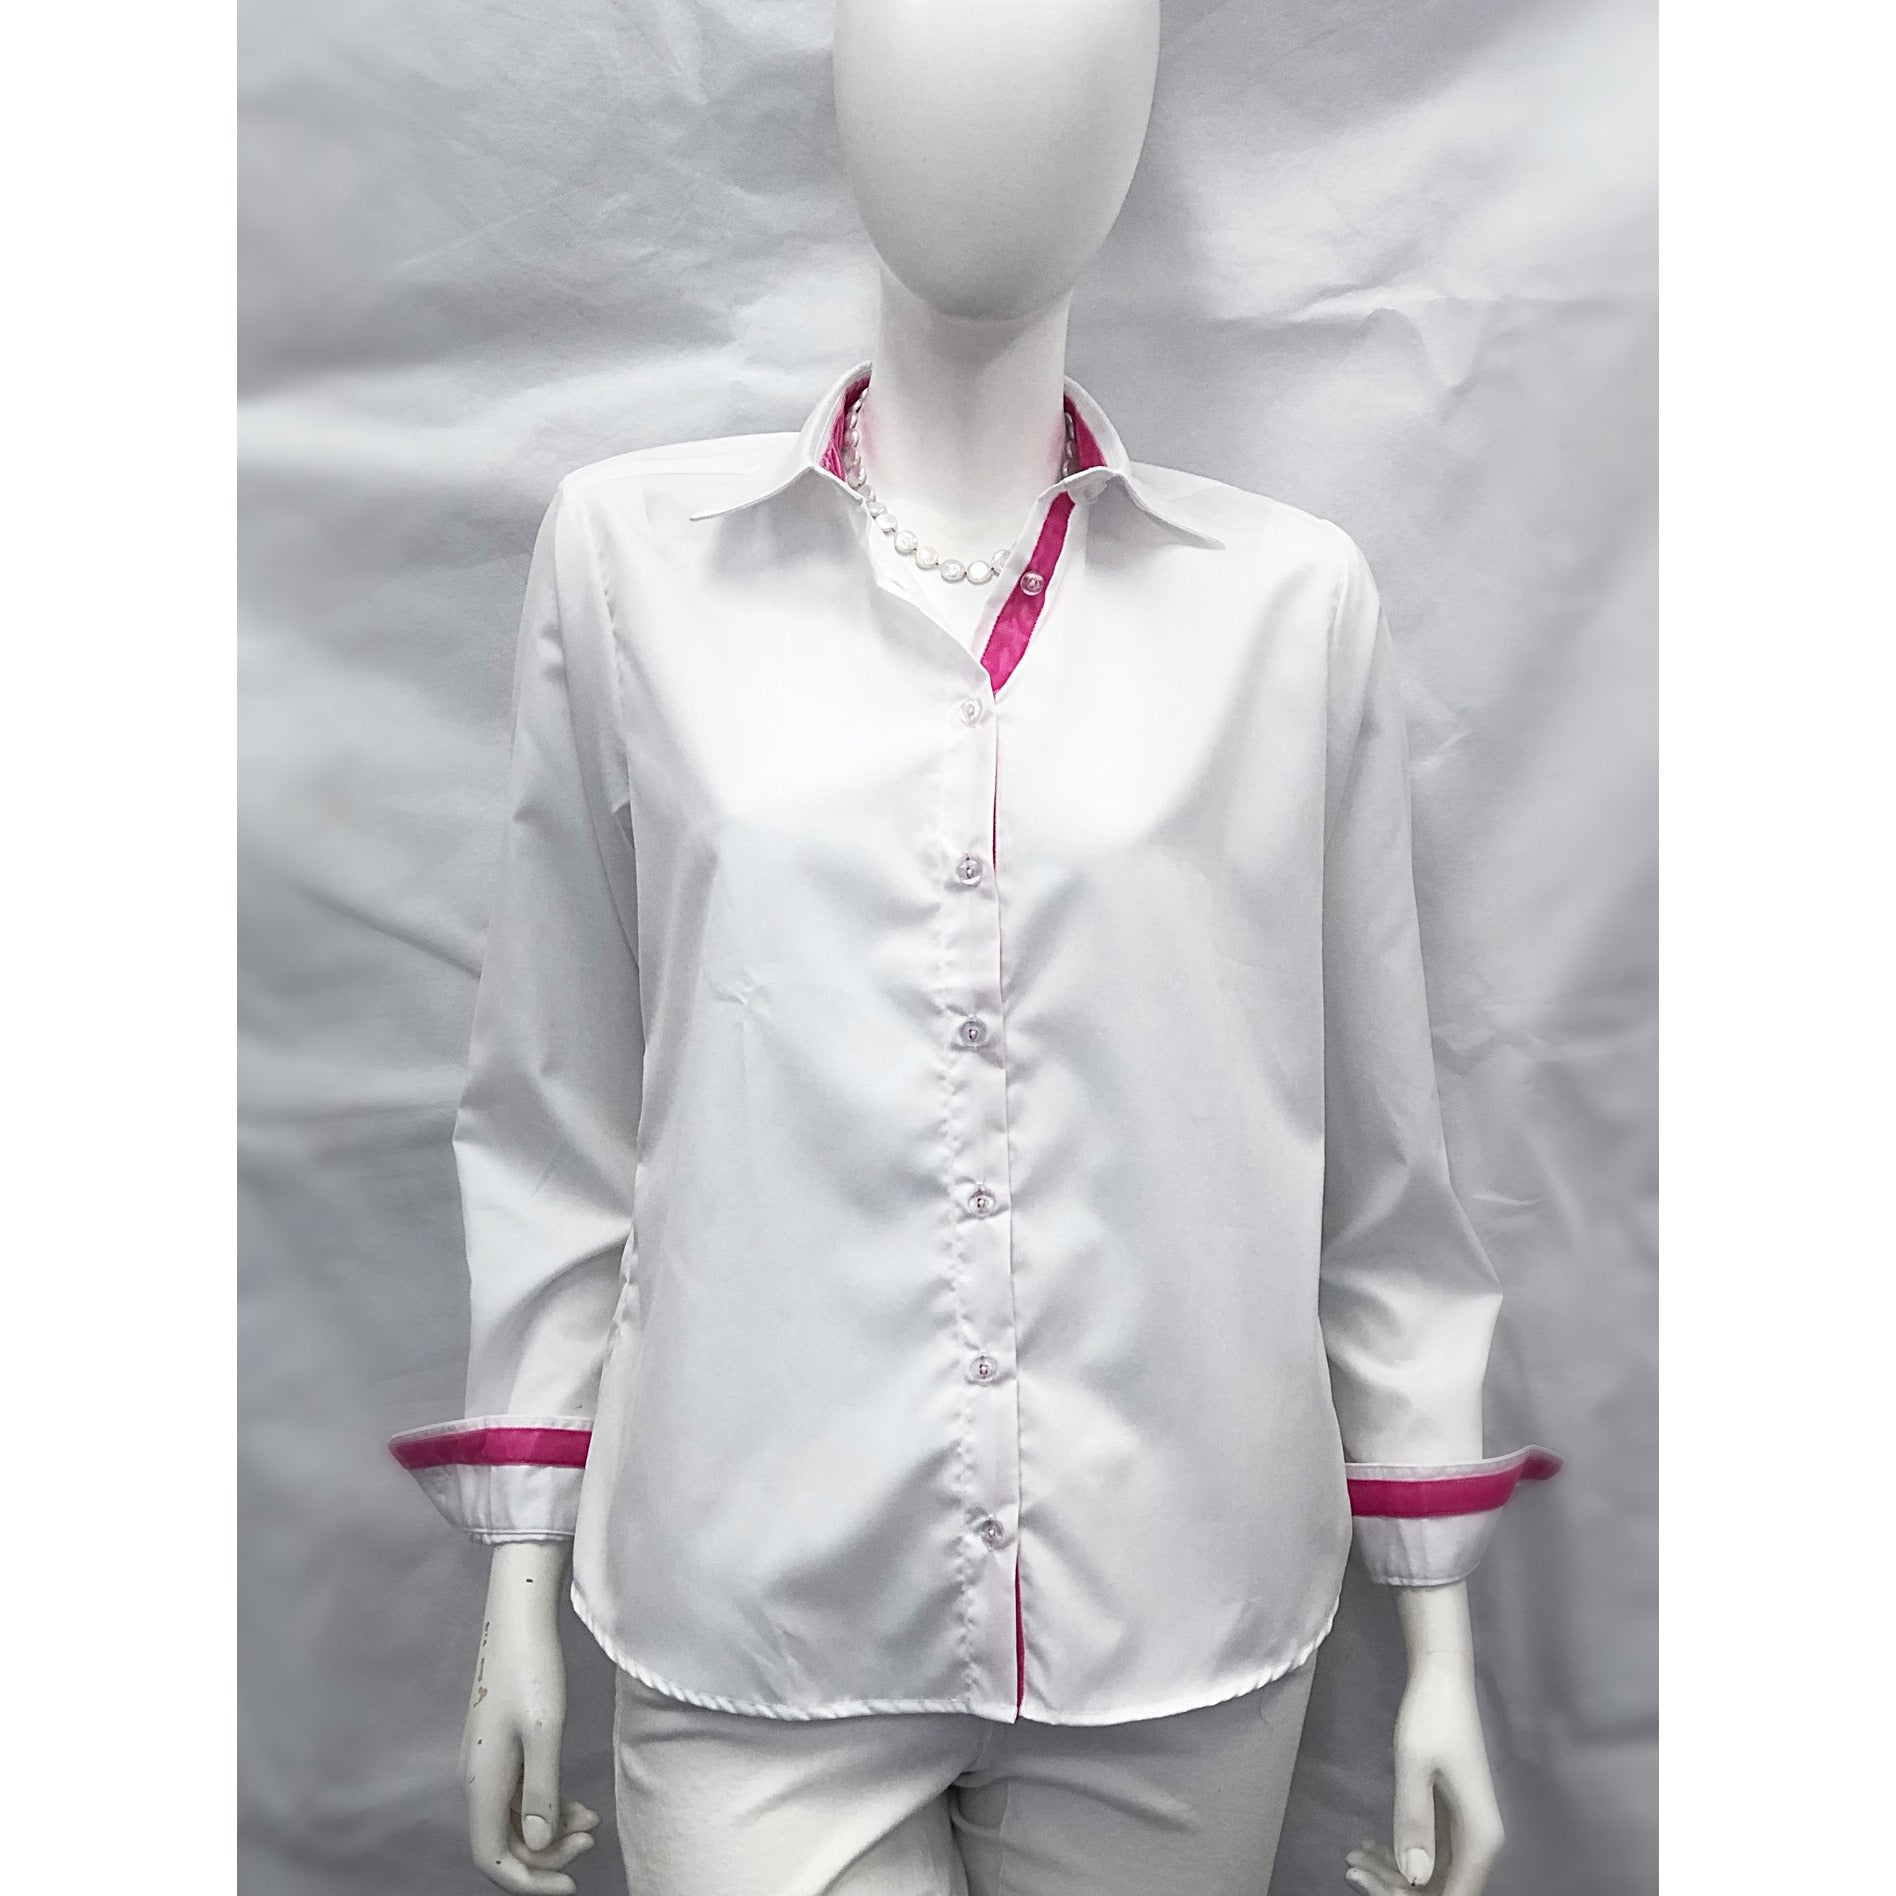 Cortland Park Classic Button Down Shirt White/Hot Pink